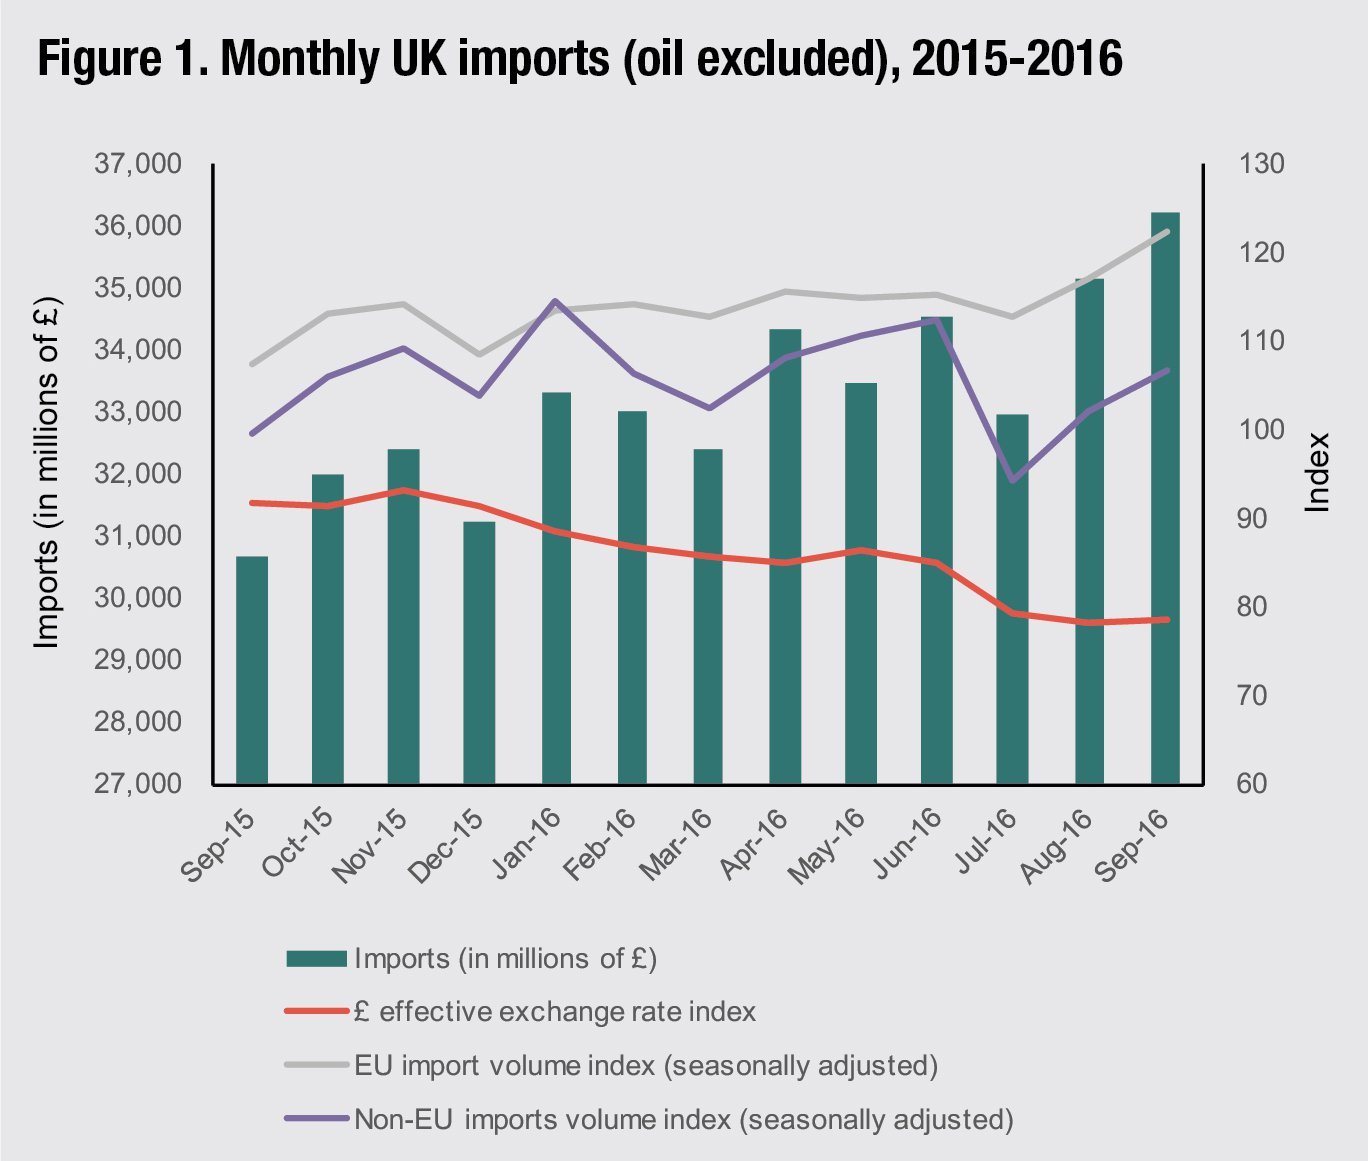 Figure 1. Monthly UK imports (oil excluded), 2015-2016. Source: ONS Note: £ effective exchange rate index base 2015=100. EU and Non-EU imports volume seasonally adjusted index base 2013=100